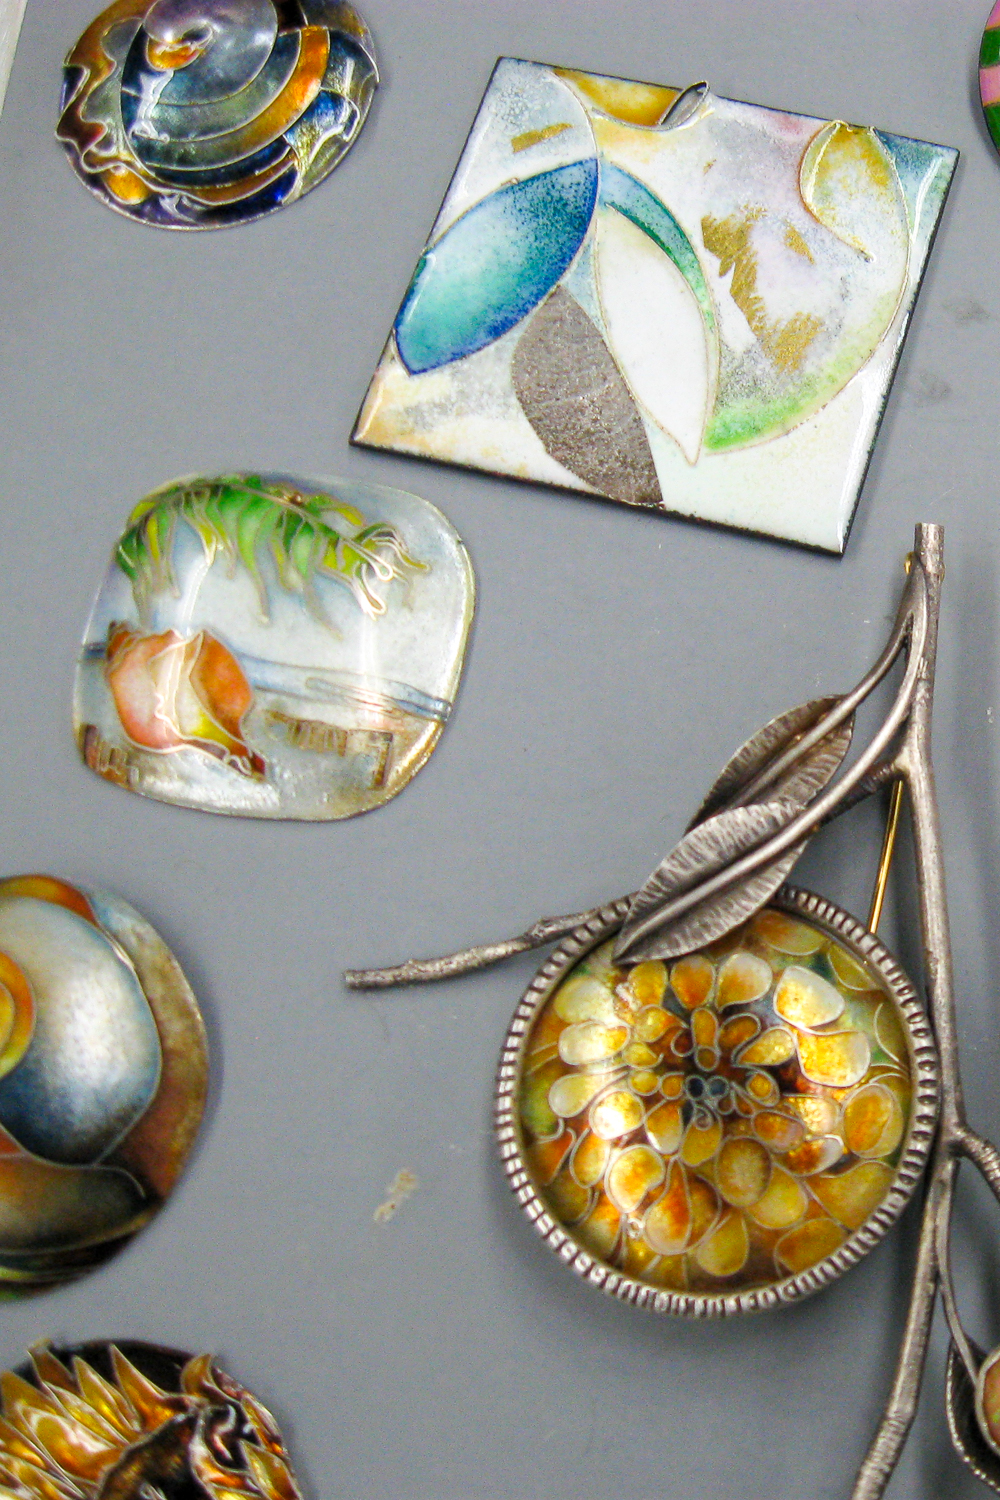 Samples from Linda Darty Enamel Workshop